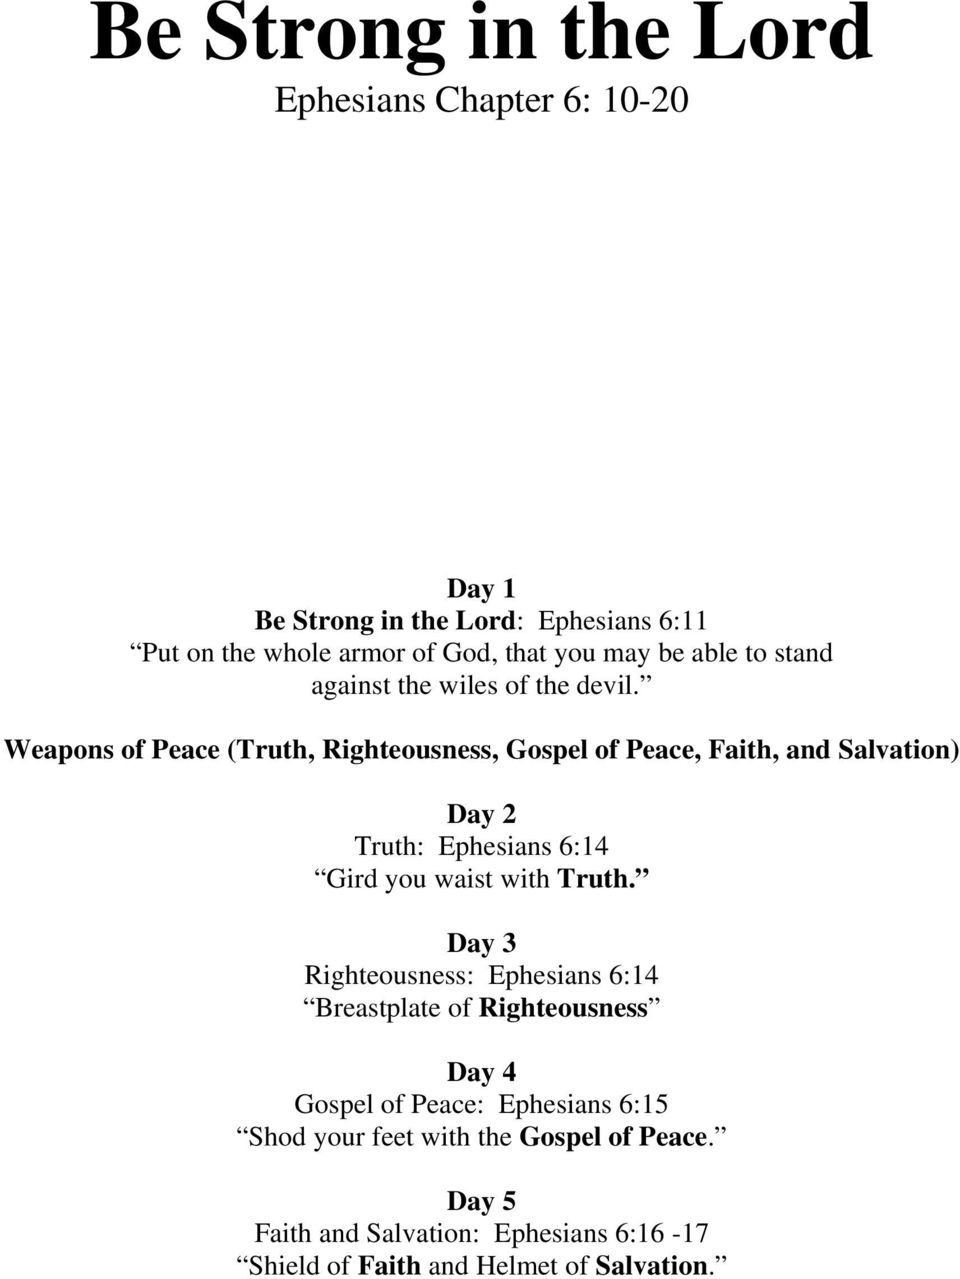 Weapons of Peace (Truth, Righteousness, Gospel of Peace, Faith, and Salvation) Day 2 Truth: Ephesians 6:14 Gird you waist with Truth.